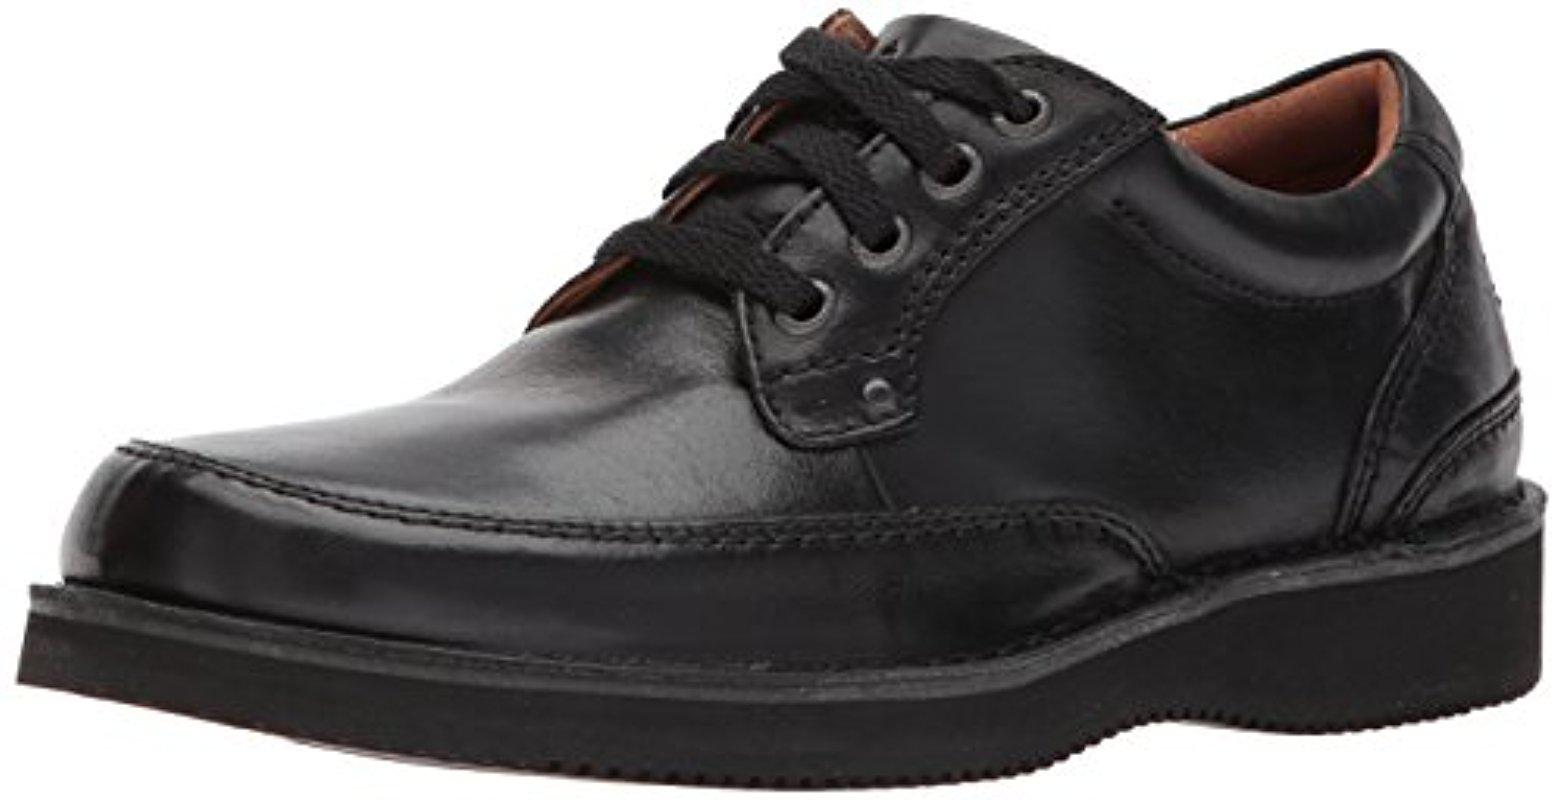 rockport shoes 13 network 959740